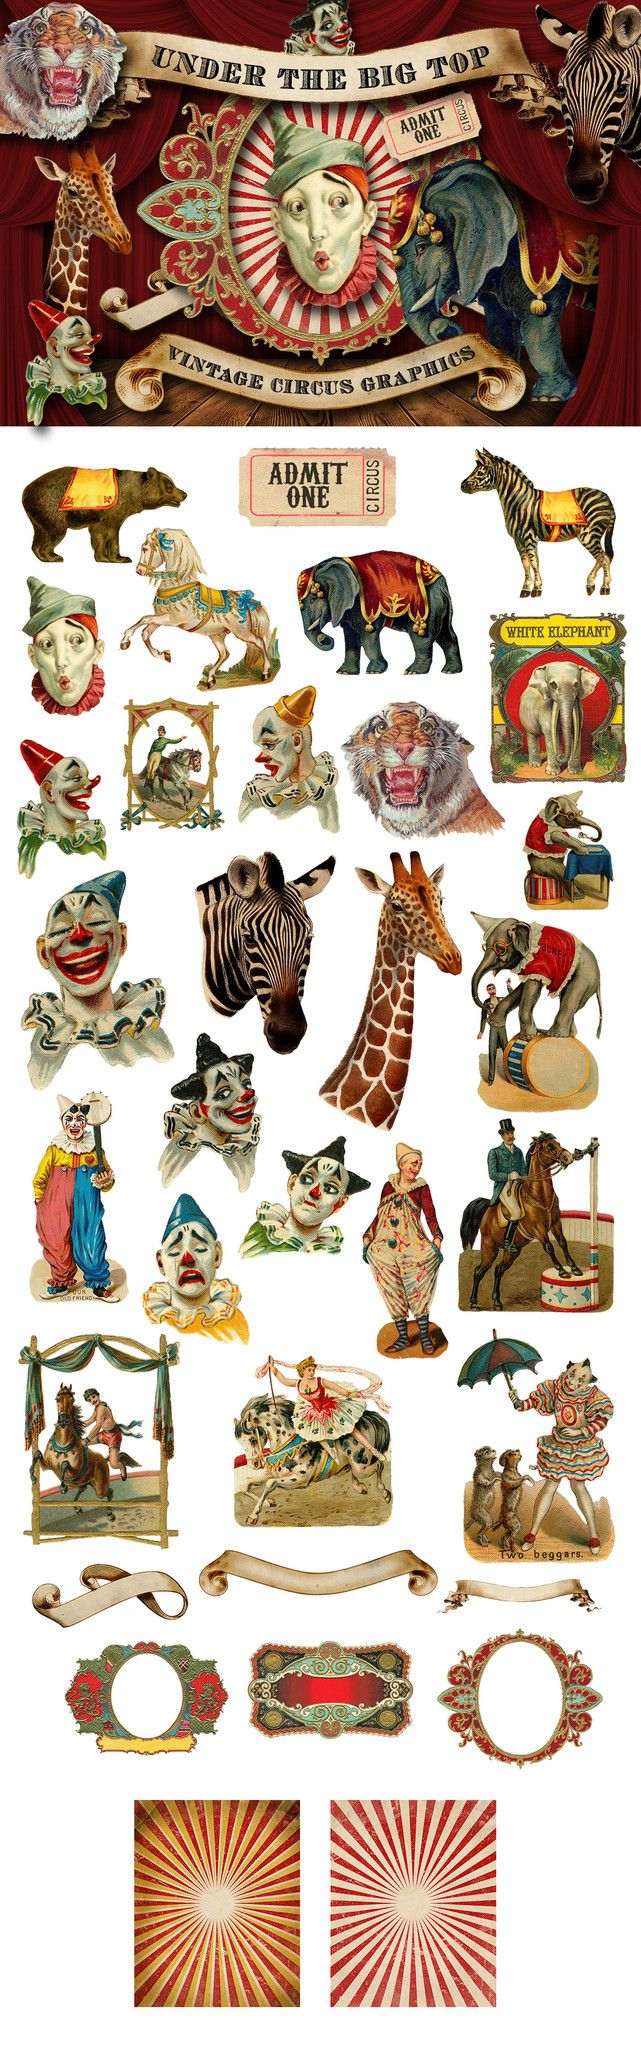 Vintage Circus Graphics – Avalon Rose Design, creepiest clowns ever, poor animals!